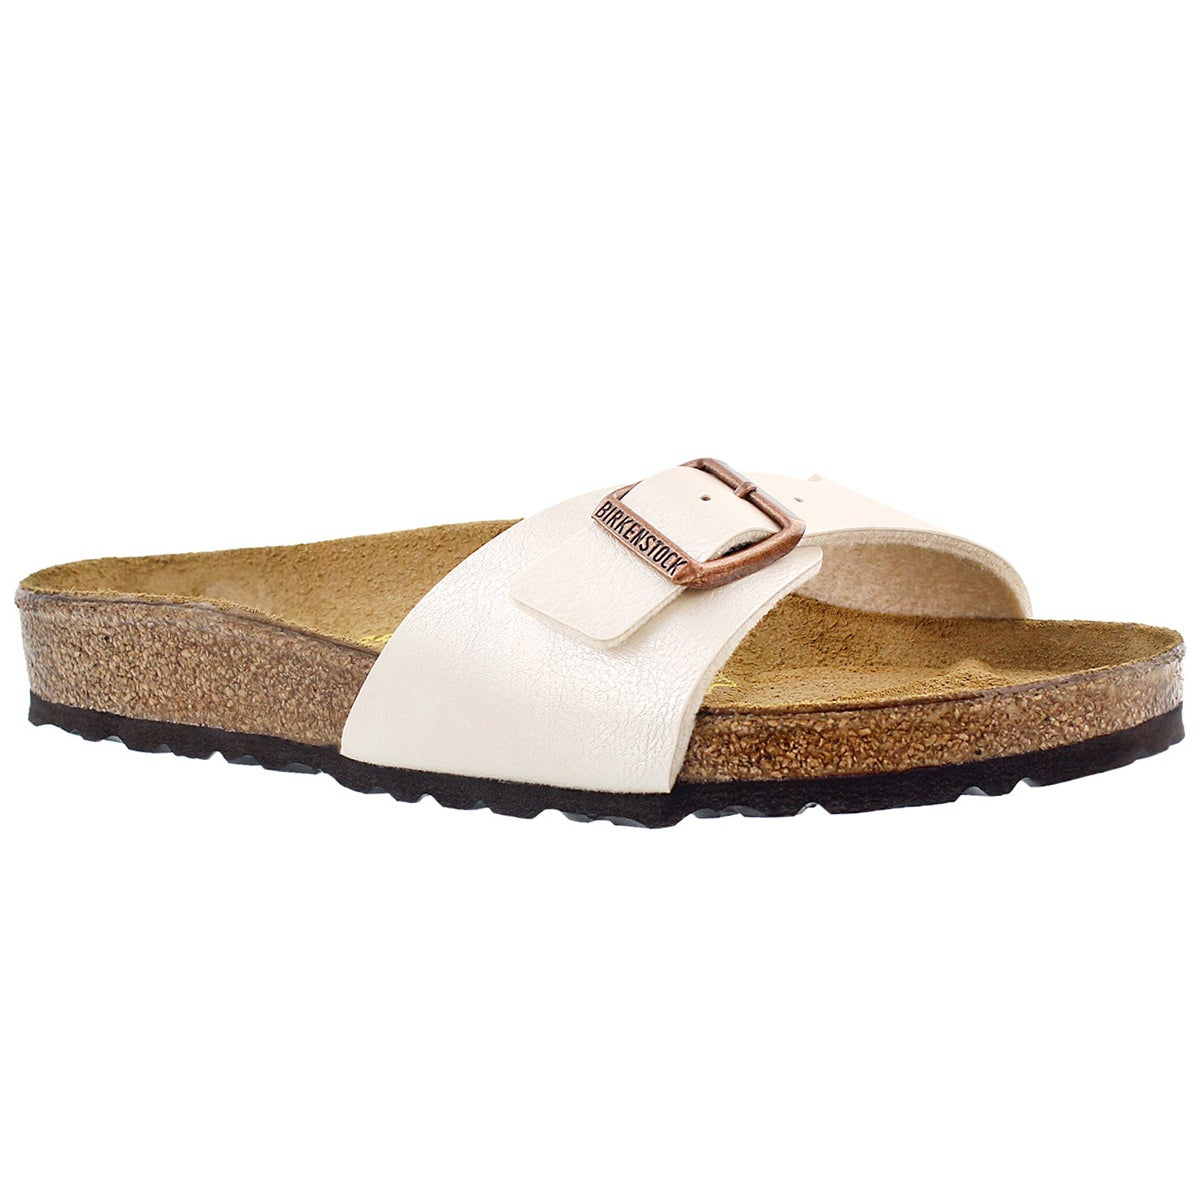 Women's MADRID pearlized white single strap sandal